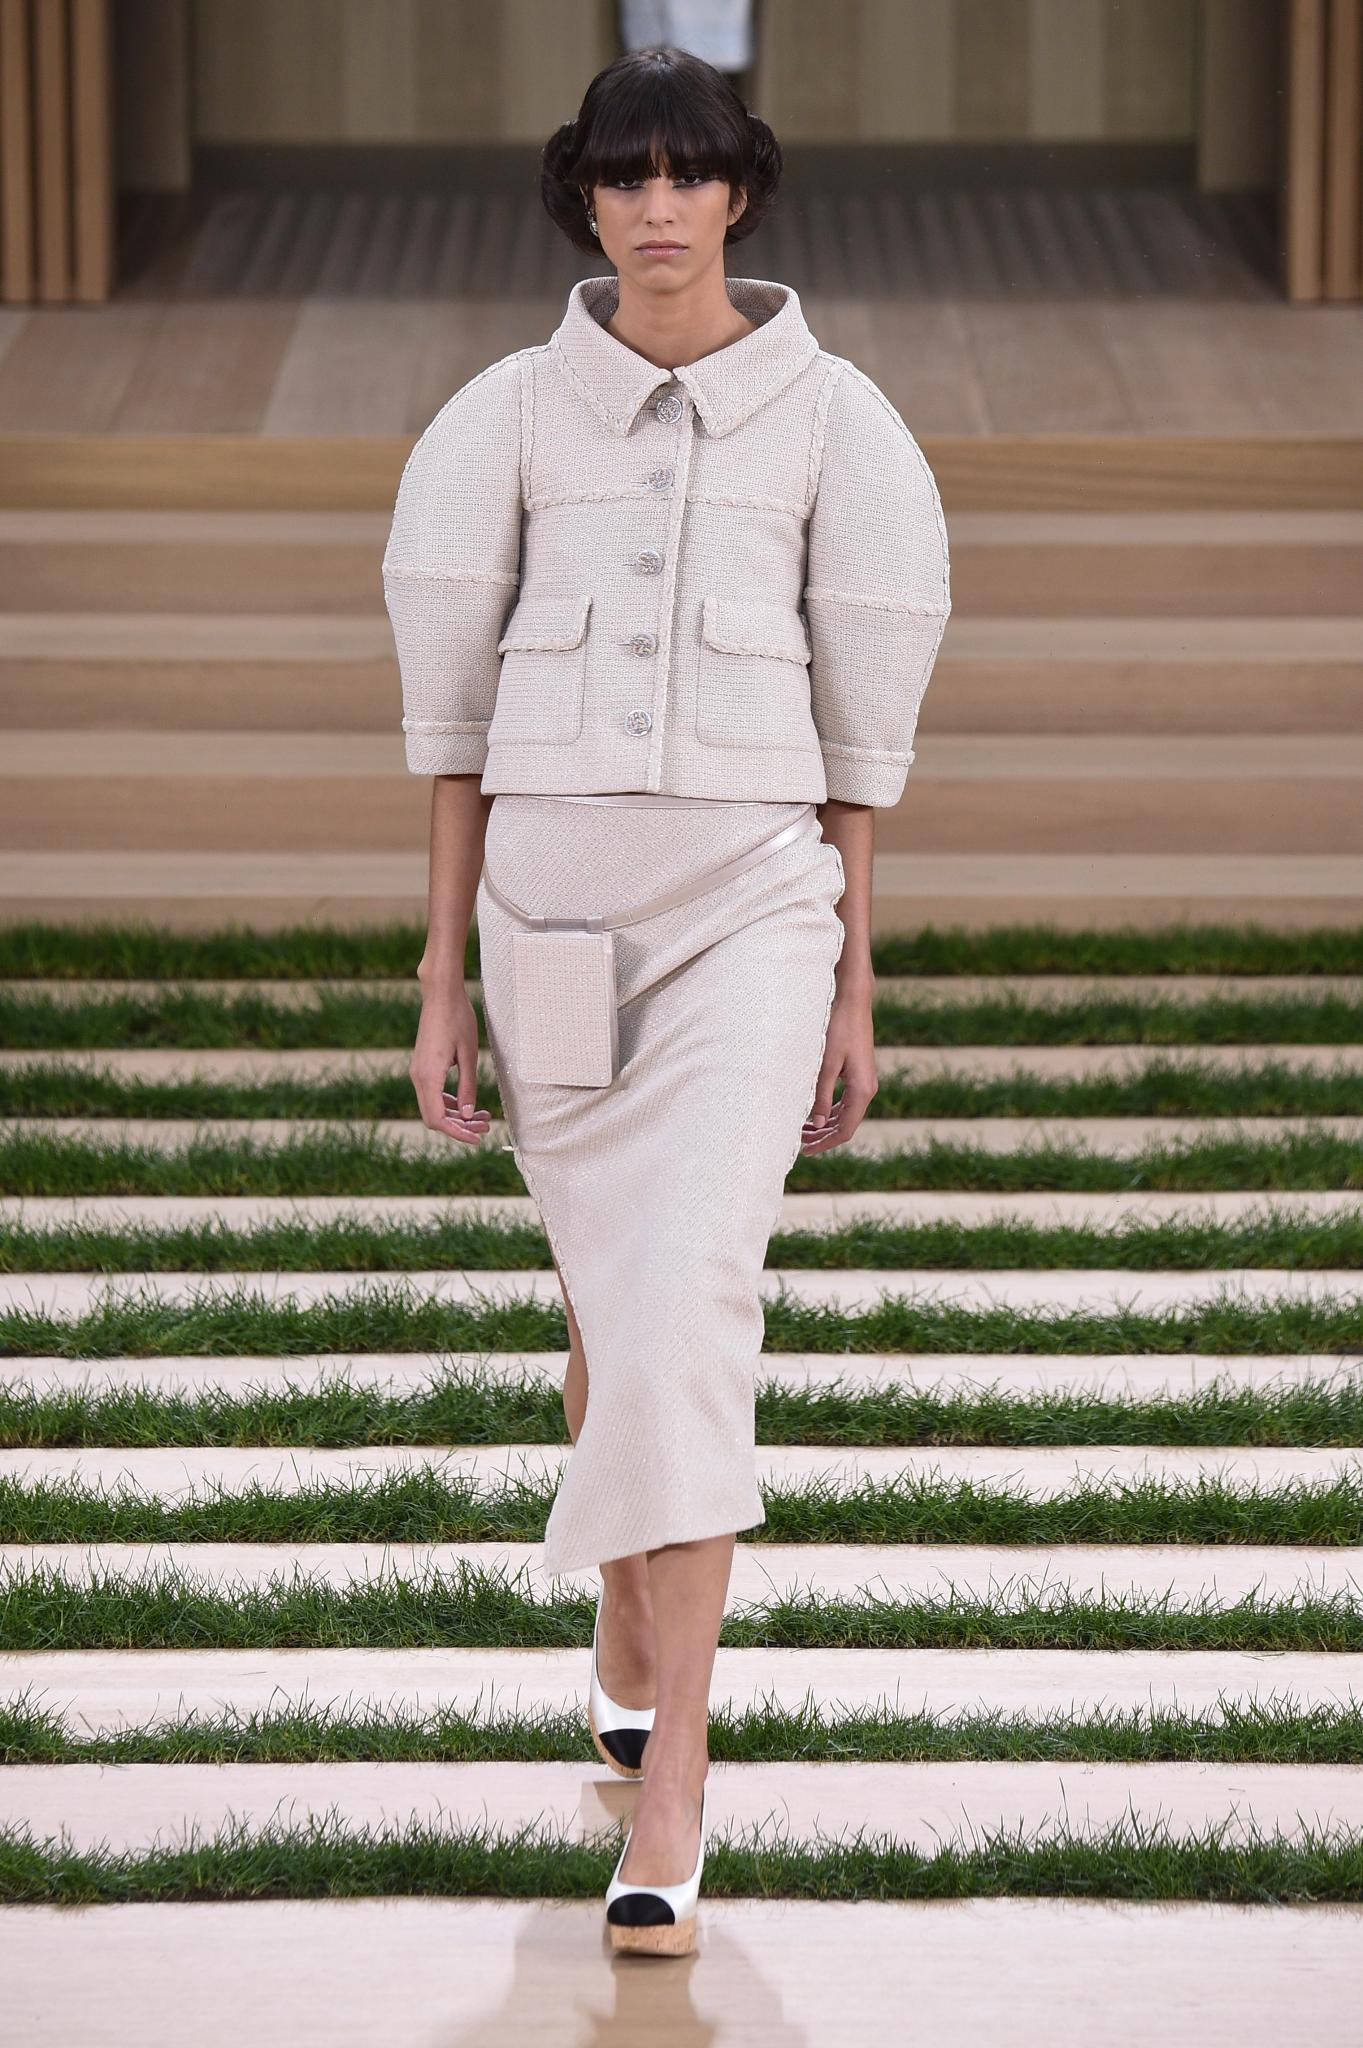 """<p>To showcase its haute couture collection, Chanel had models meander through an impeccably neat garden in chignons and two-tone platforms while wielding iPhone 6 cases that matched their outfit. </p><p>Sticking with a beige palette (""""Gabrielle Chanel was the Queen of beige,"""" said Karl Lagerfeld backstage), sleeveless evening dresses were accompanied by show-stealing rhinestone capes.</p><p>The collection marked the couture debut of models of the moment Gigi and Bella Hadid, who joined Chanel favourite Kendall Jenner on the runway.</p>"""